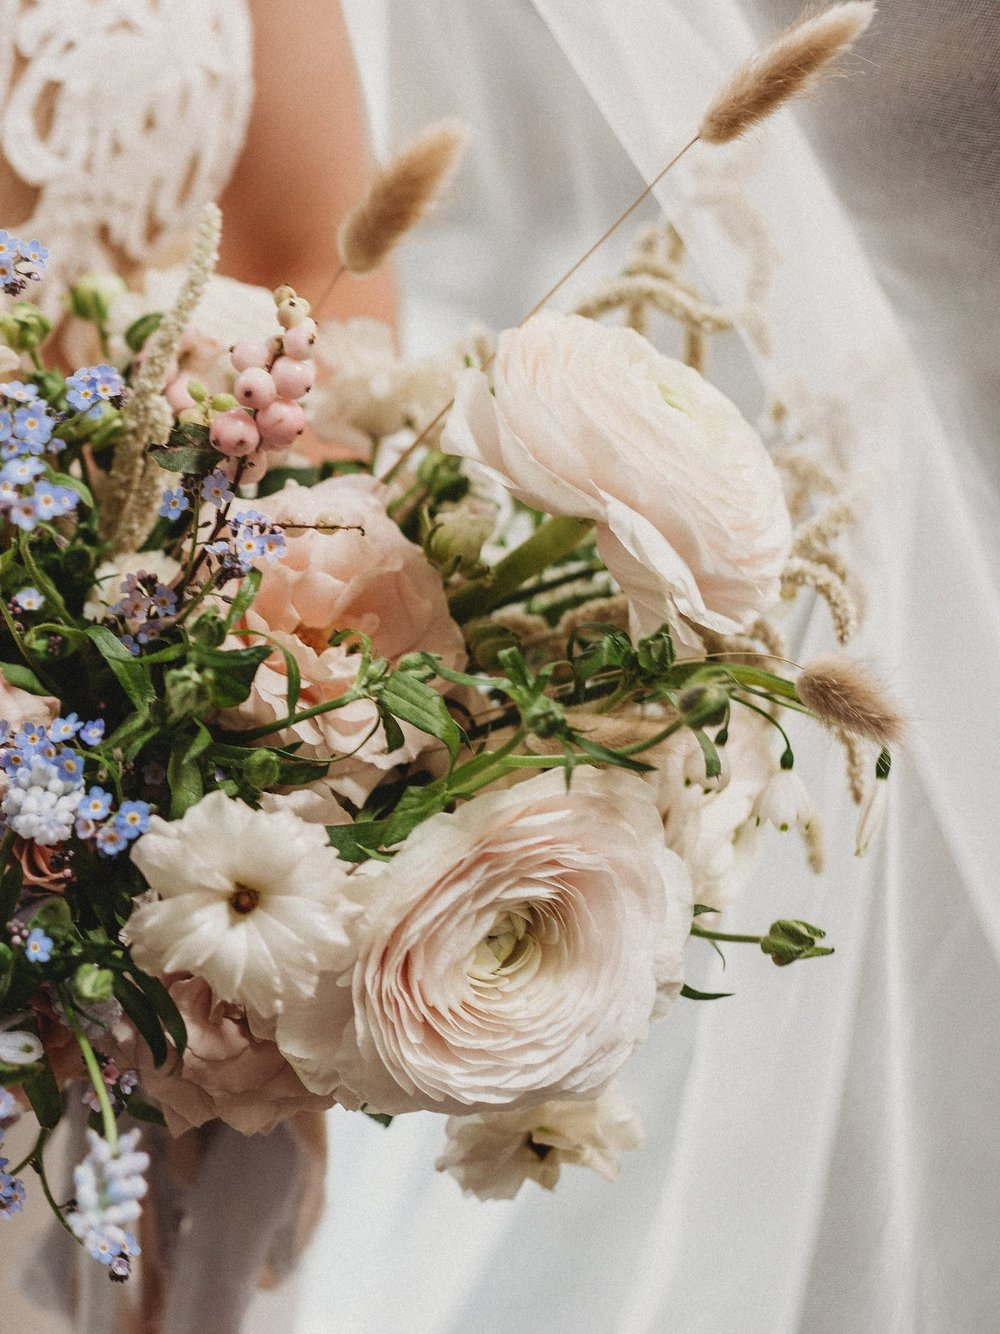 PEACH & SOFT BLUE - STYLED SHOOT